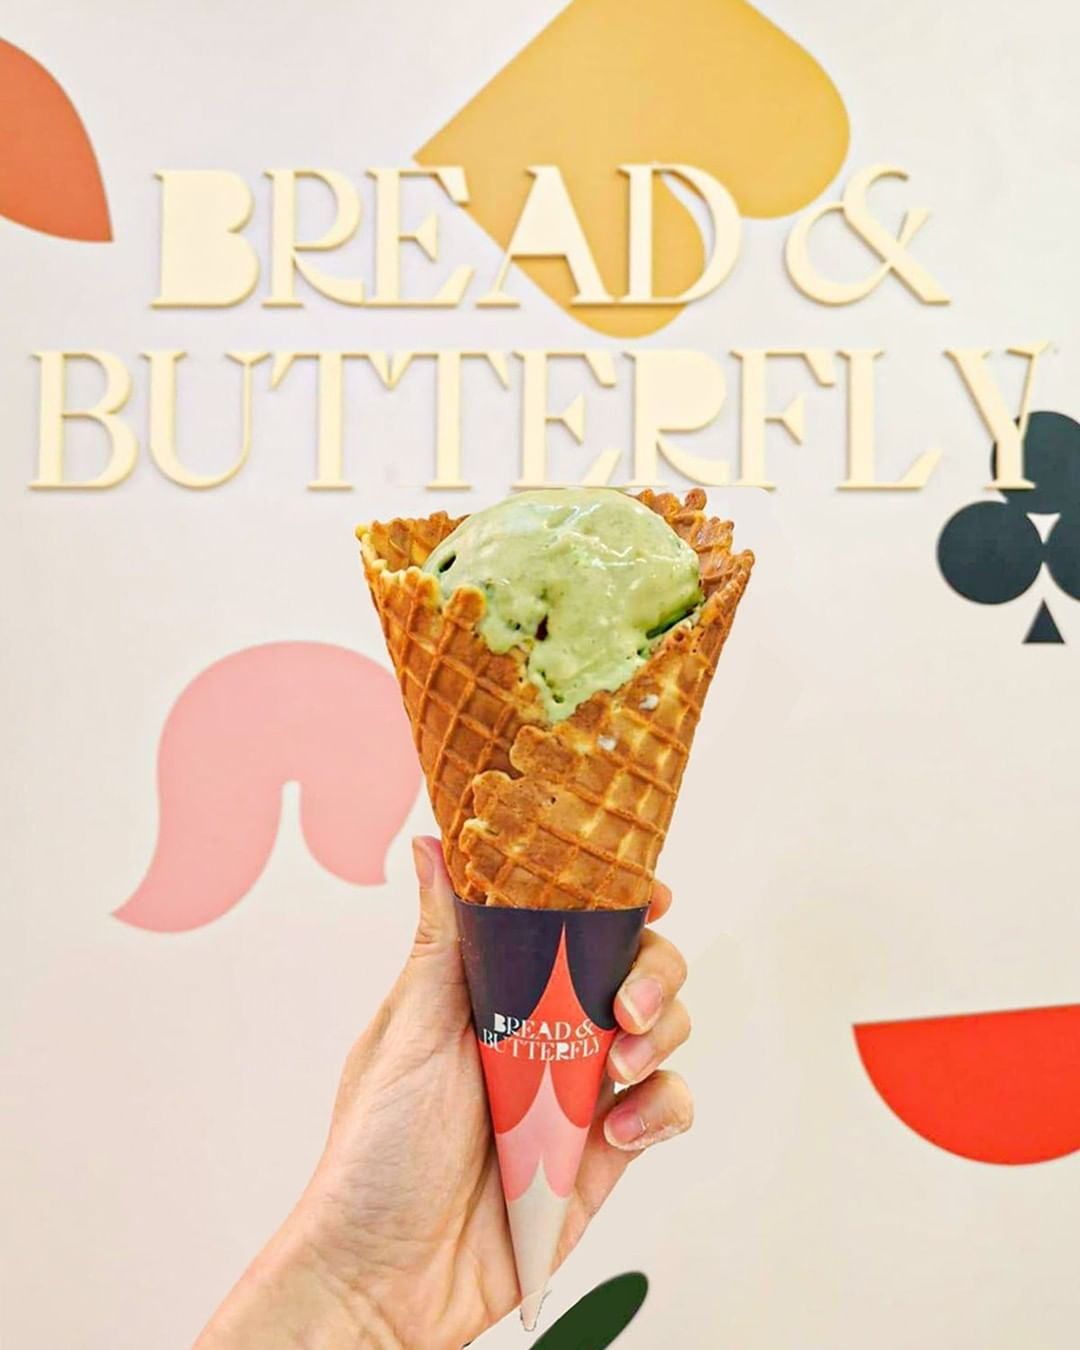 1-for-1 food deal Ice cream from Bread and Butterfly